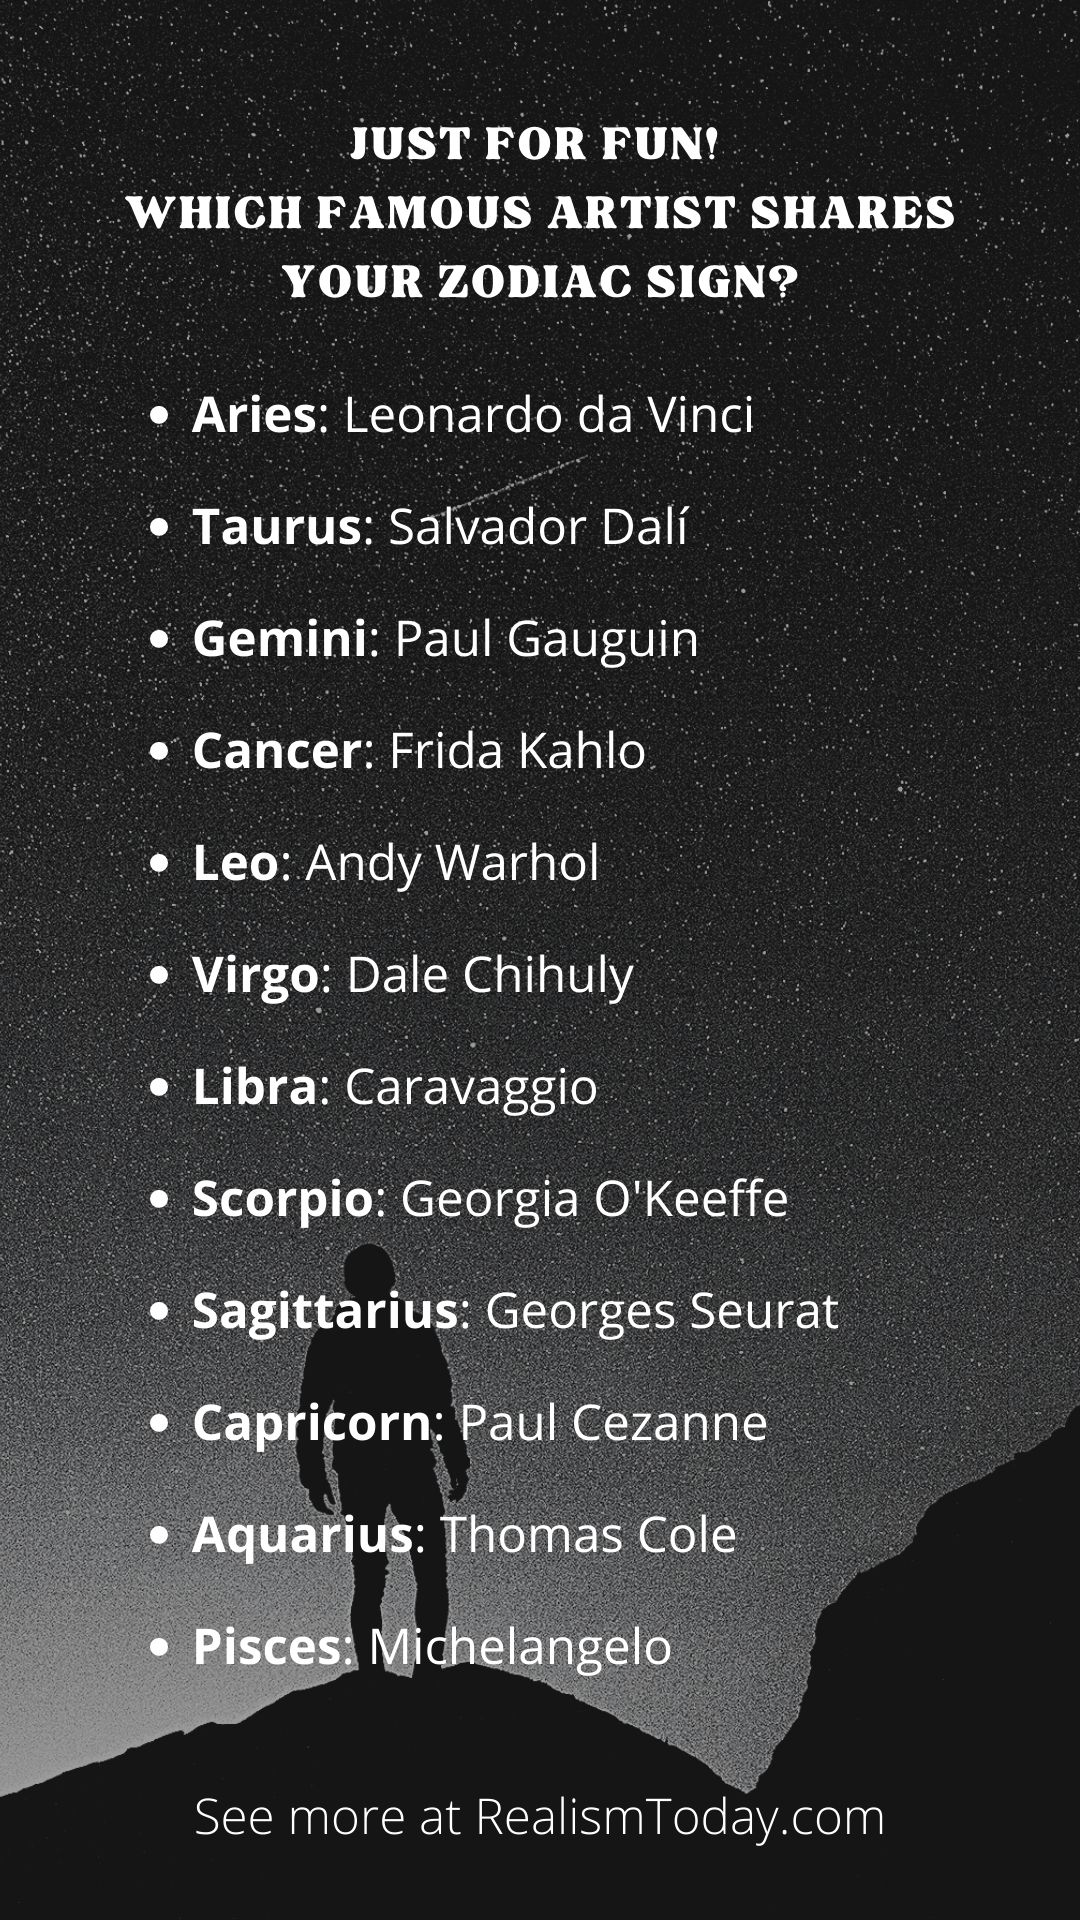 famous artists zodiac signs